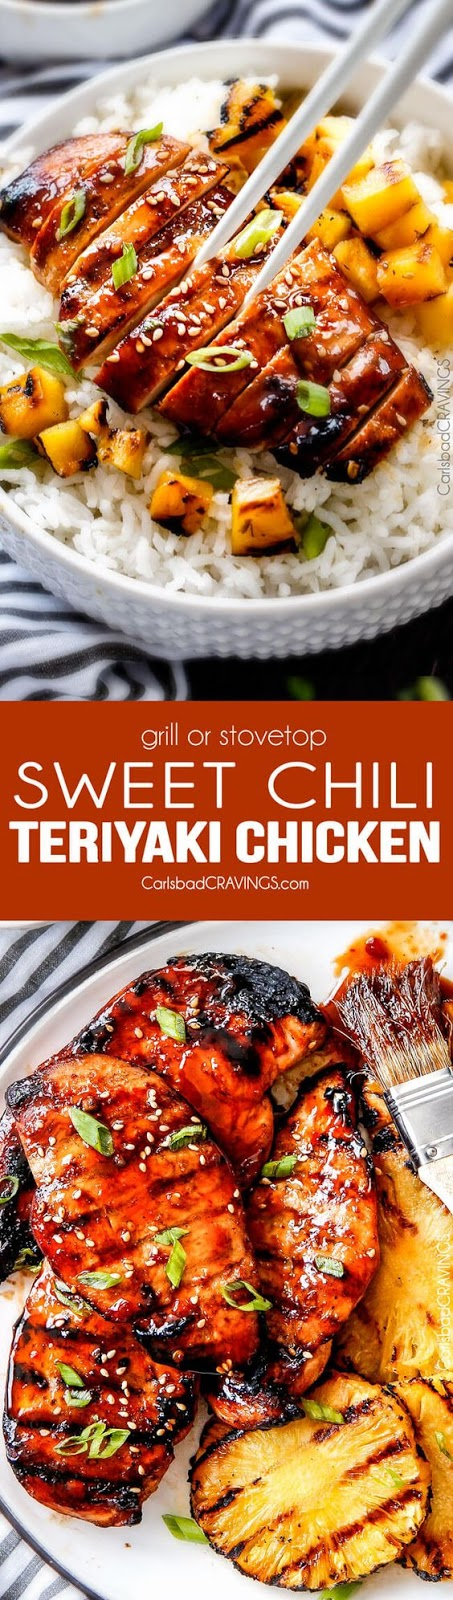 TERIYAKI CHICKEN (GRILL OR STOVE TOP)